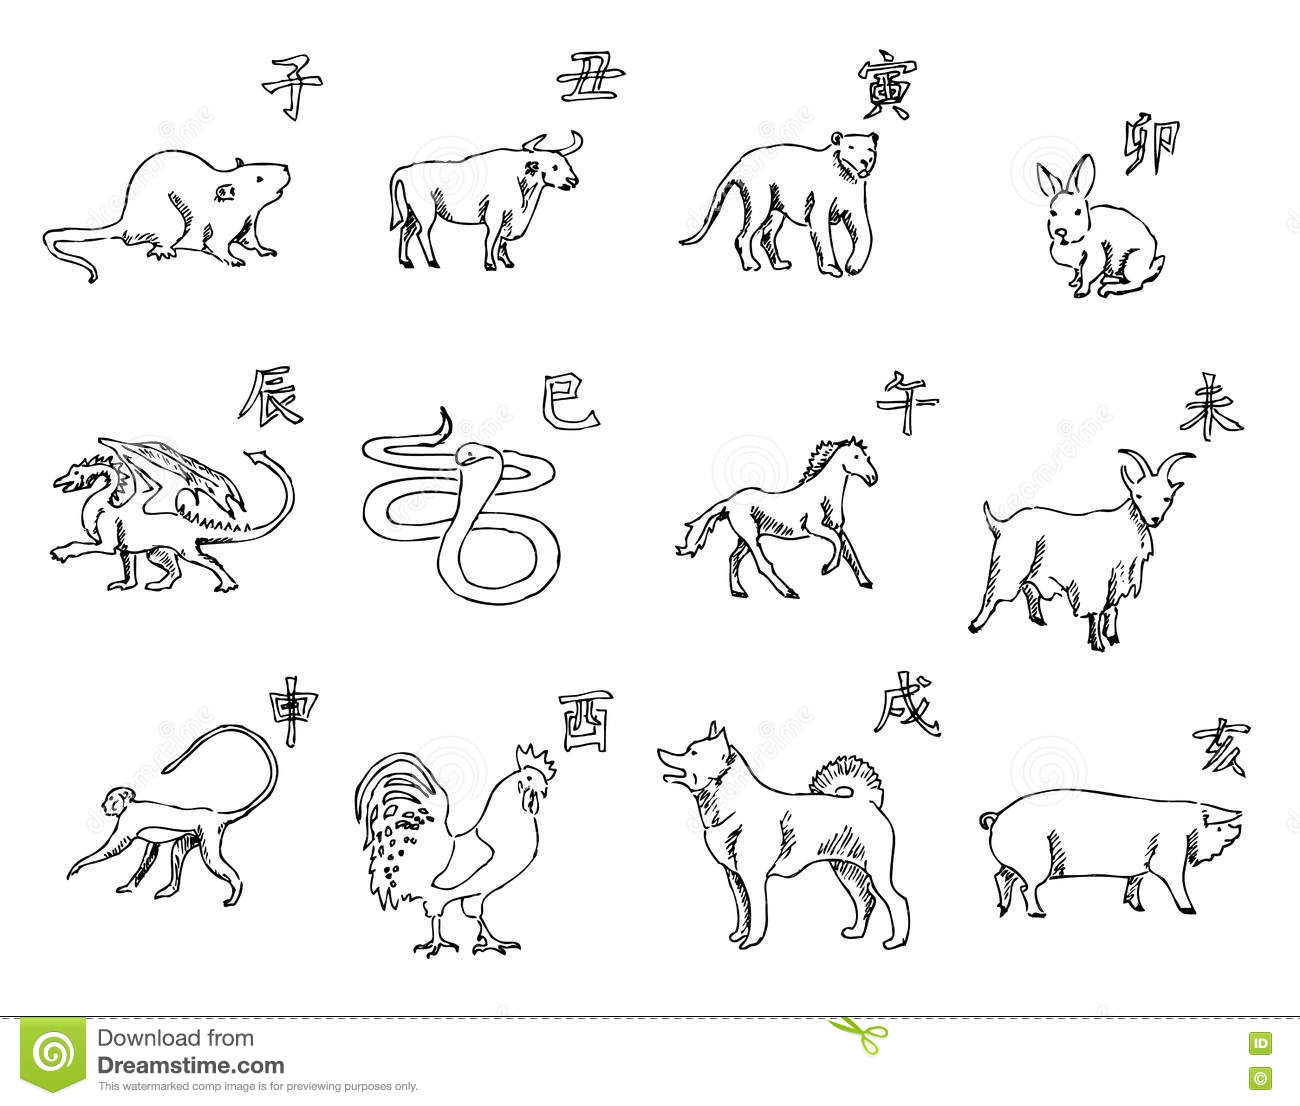 12 animals of the chinese zodiac calendar the symbols of the new year eastern calendar sketch pencil drawing by hand vector image